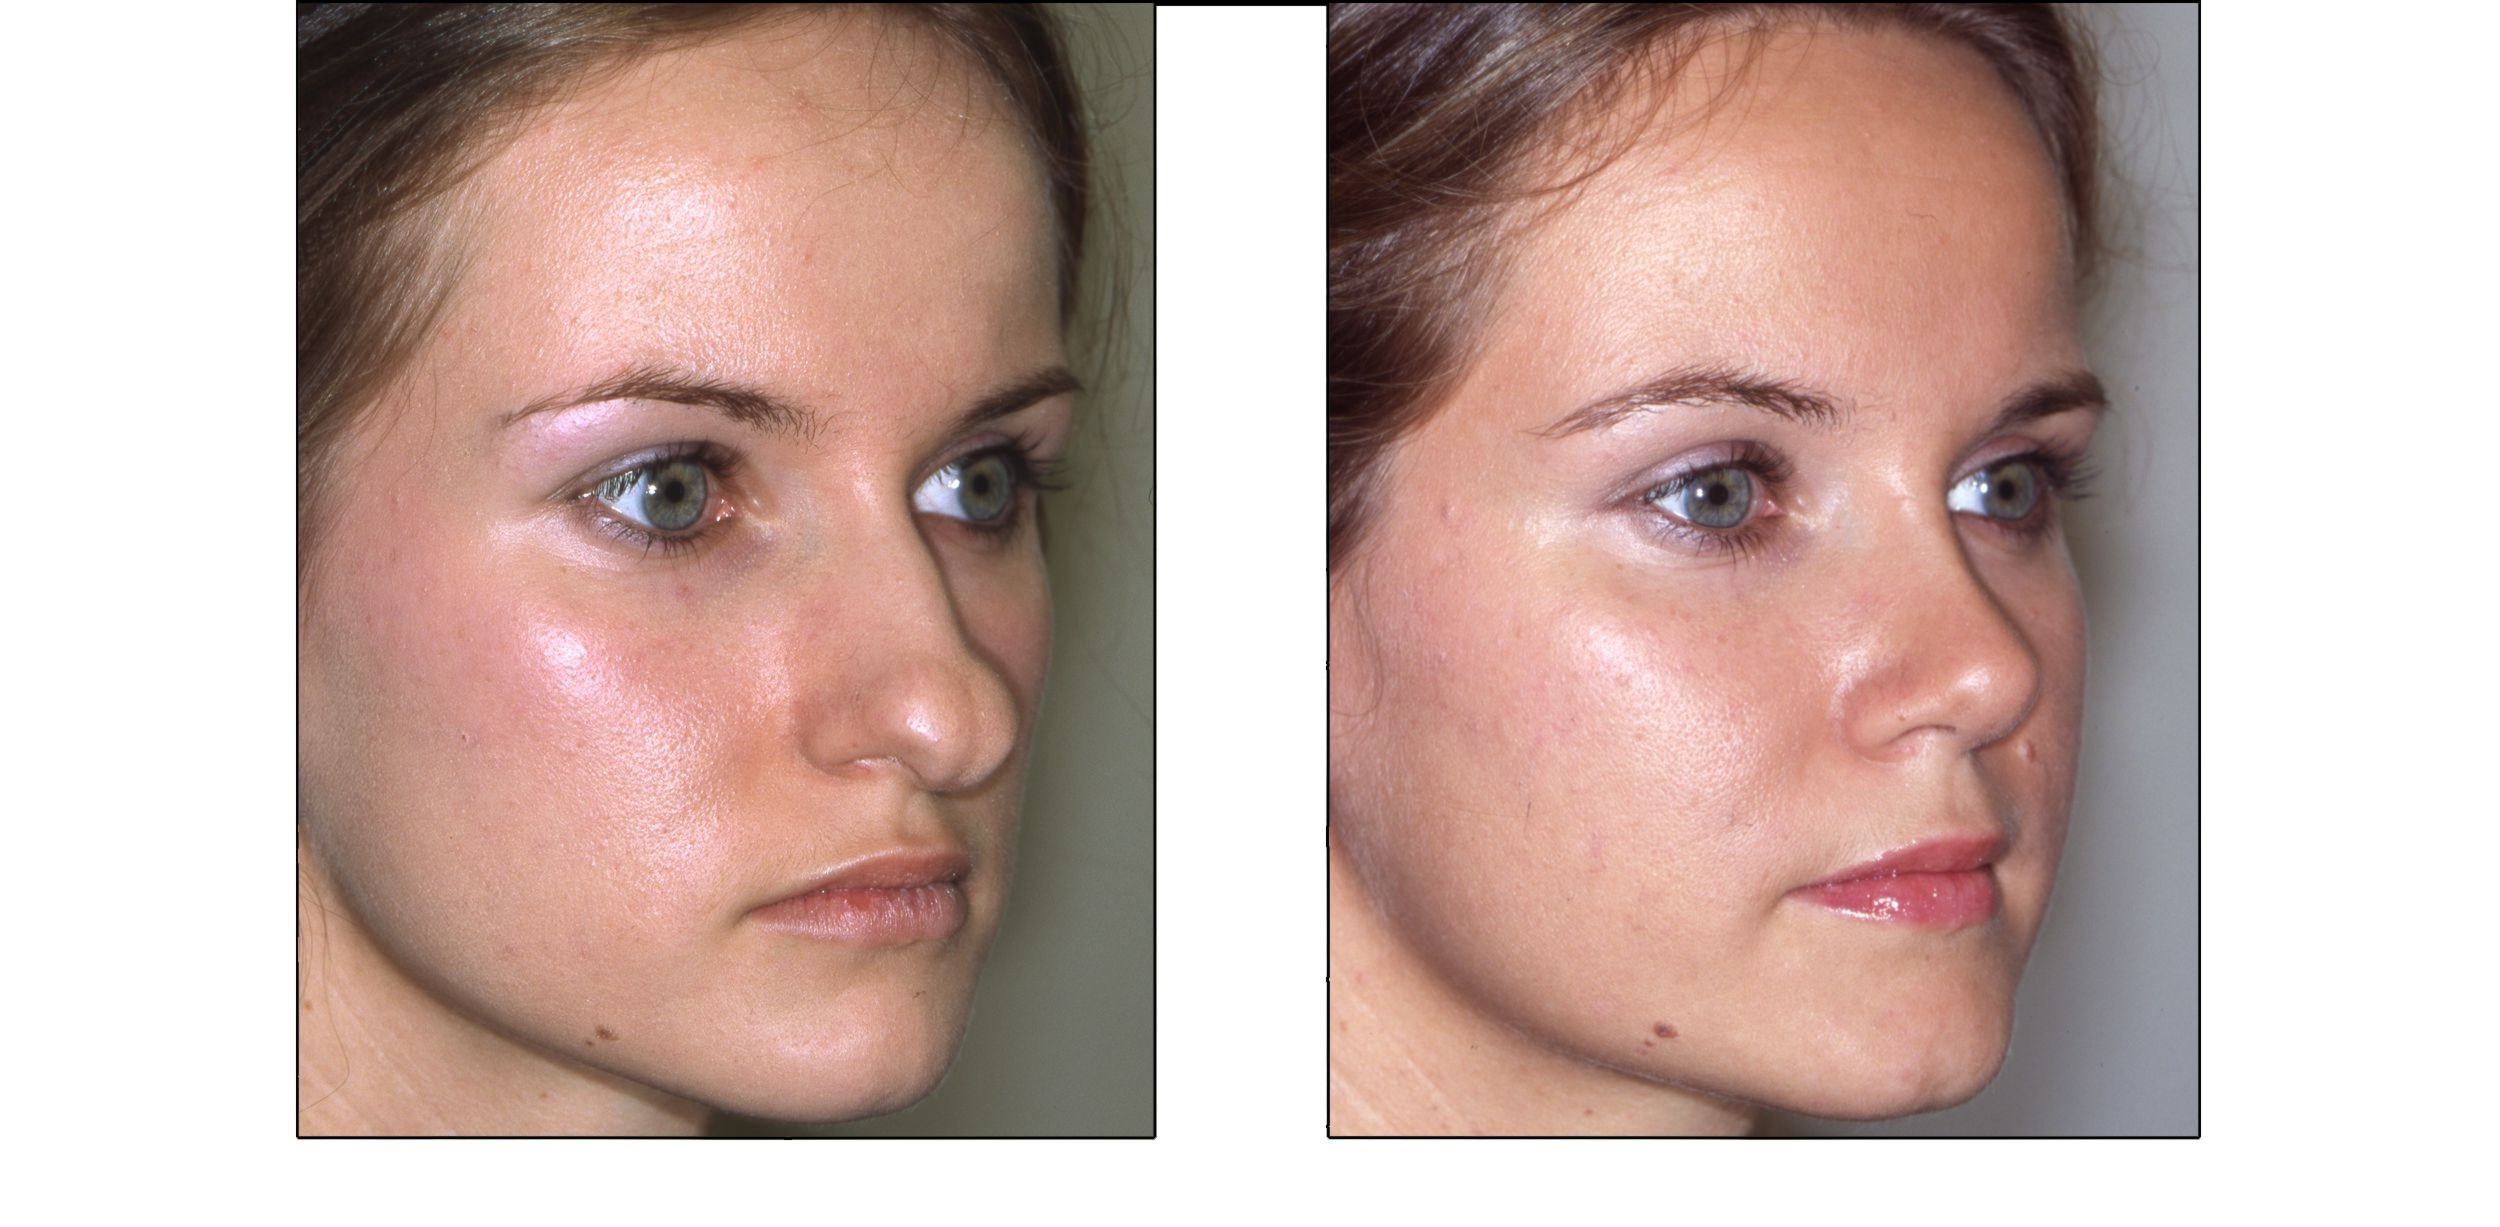 Before and after photographs of a rhinoplasty patient.